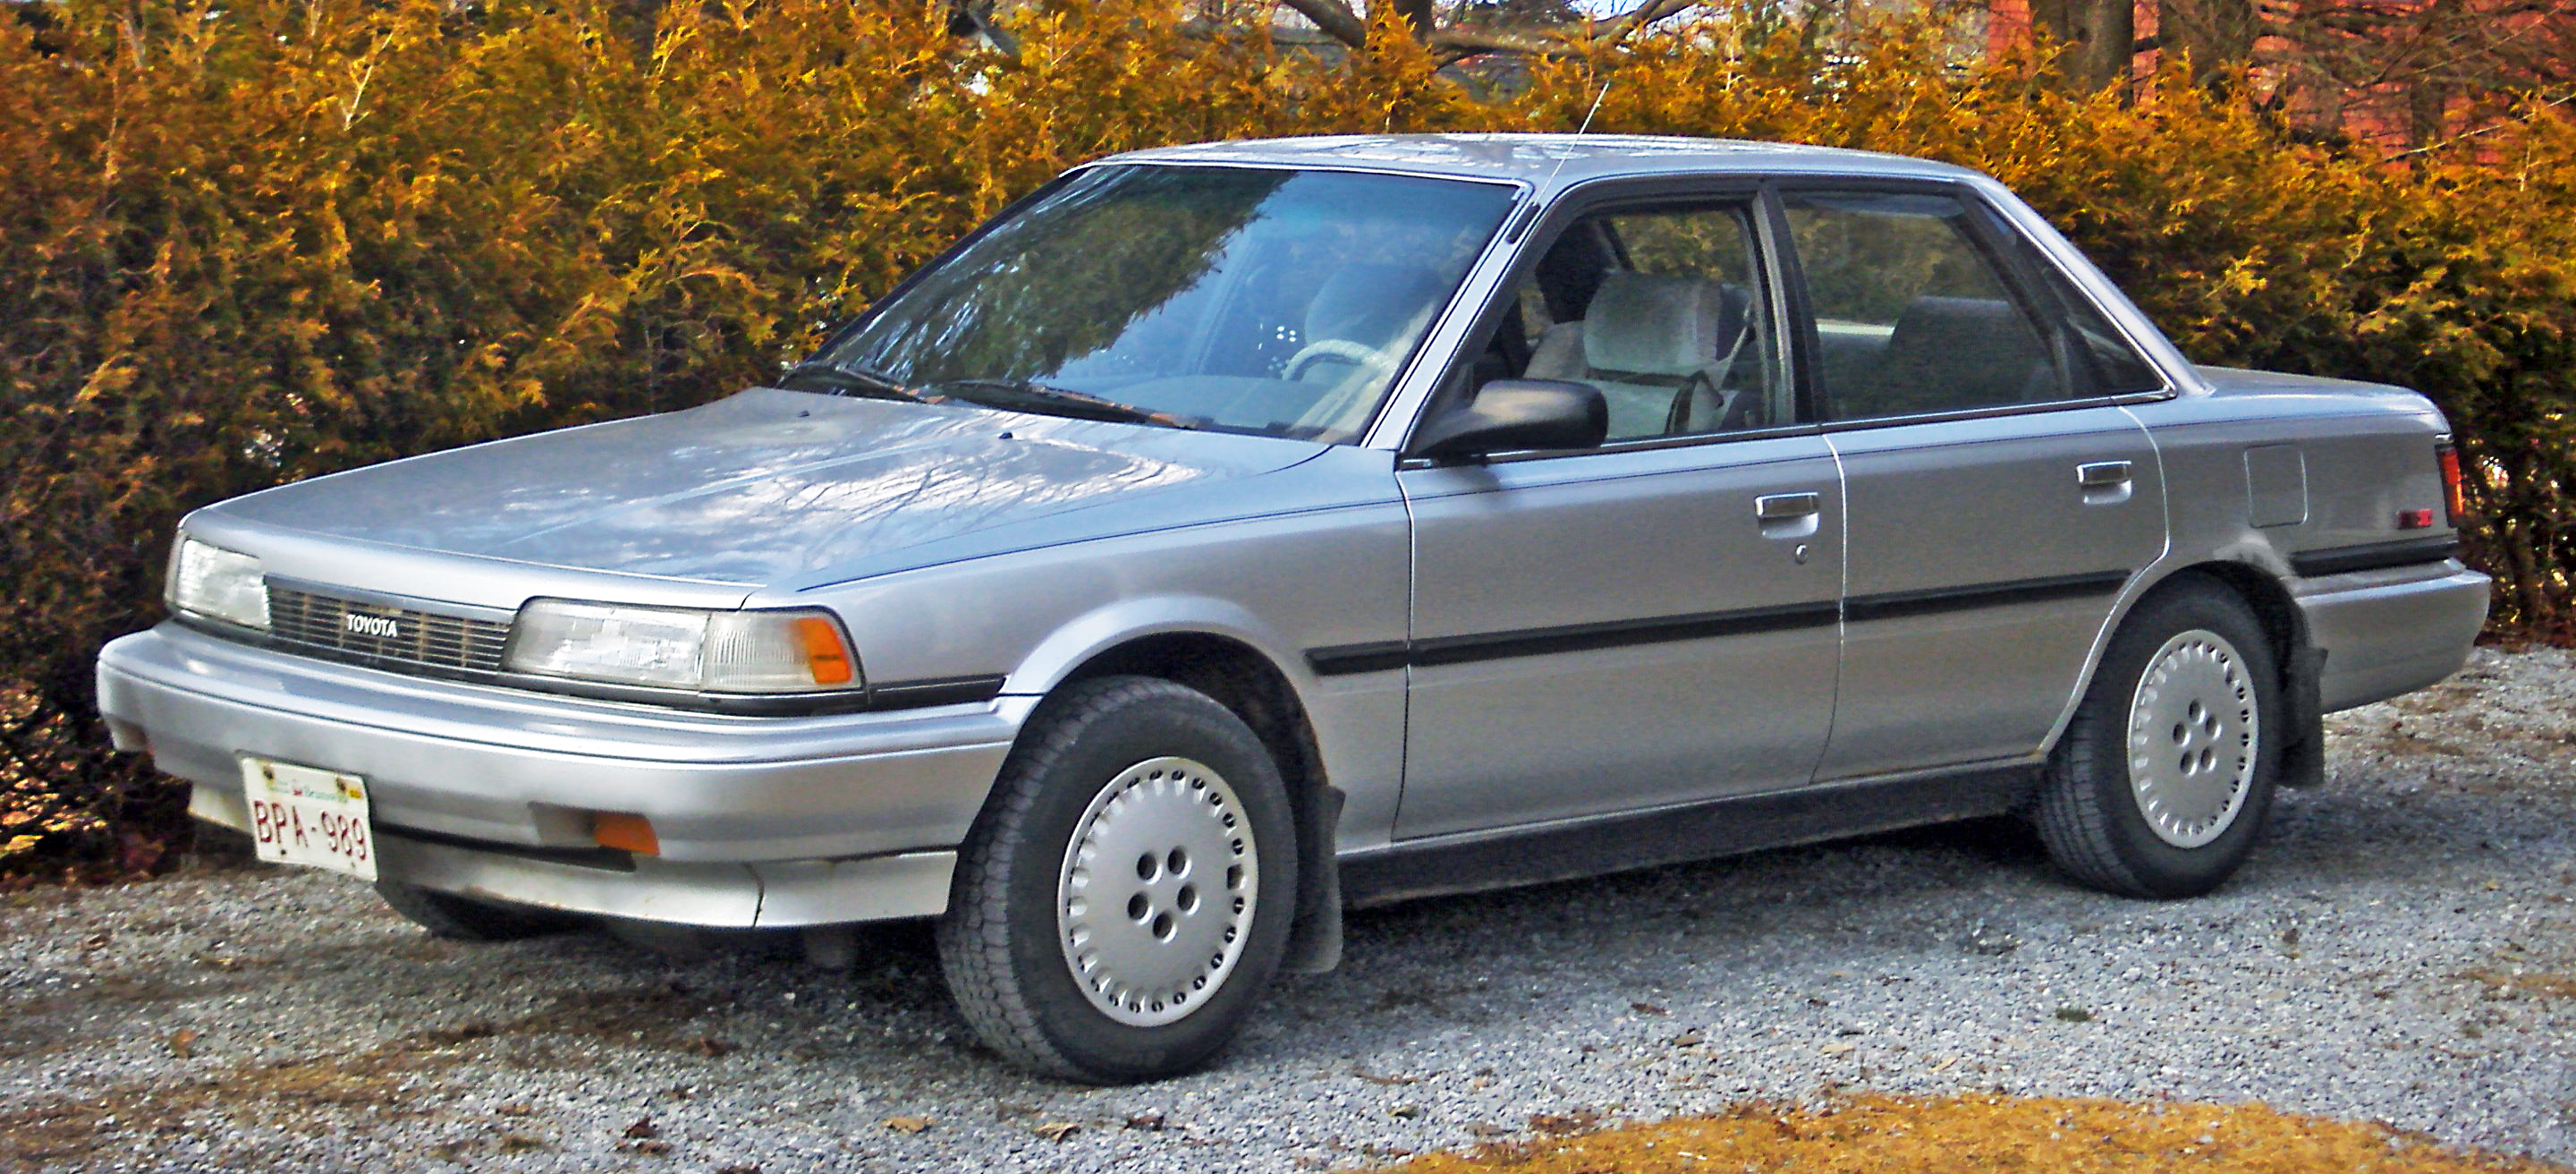 File Toyota Camry Le Sedan Jpg Wikimedia Commons